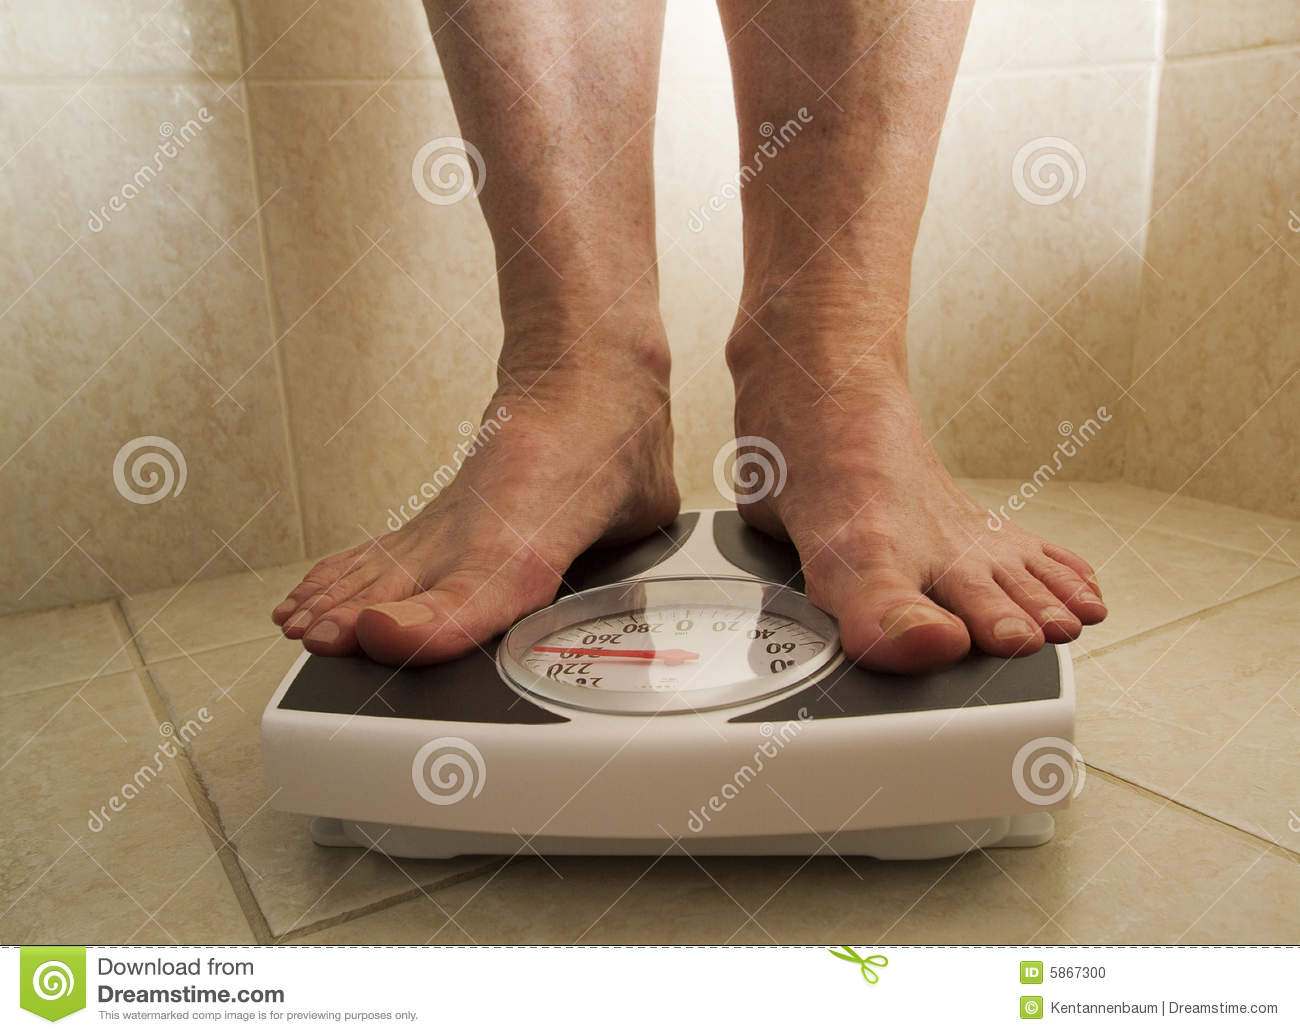 Overweight Person On Scale Stock Photo  Image Of Tile